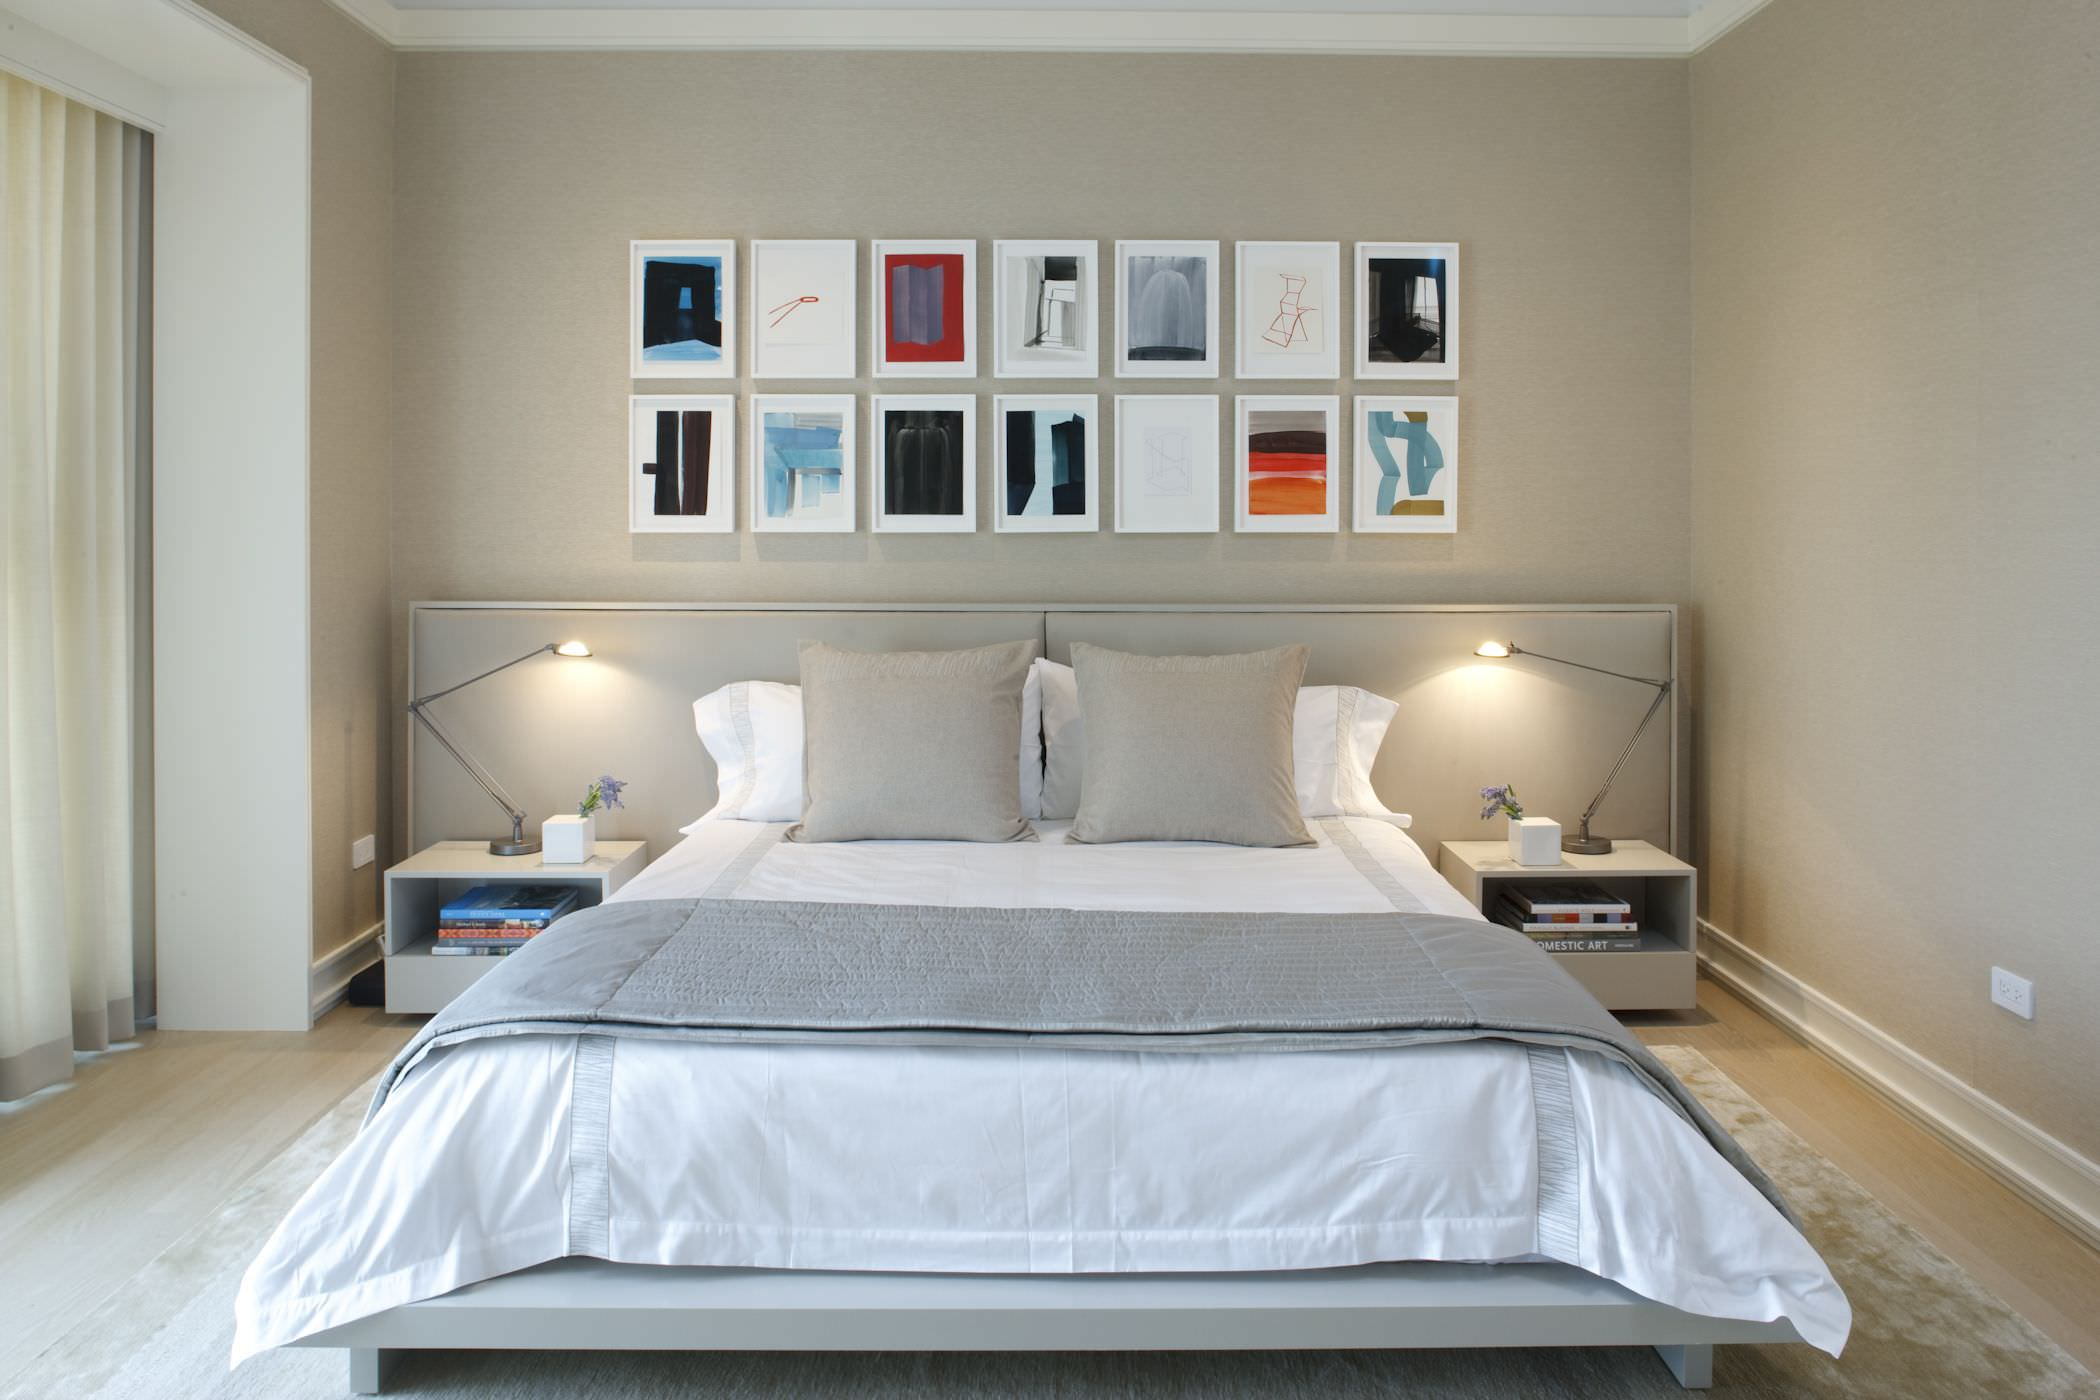 The lower bed creates more space giving the impression of a larger master bedroom.